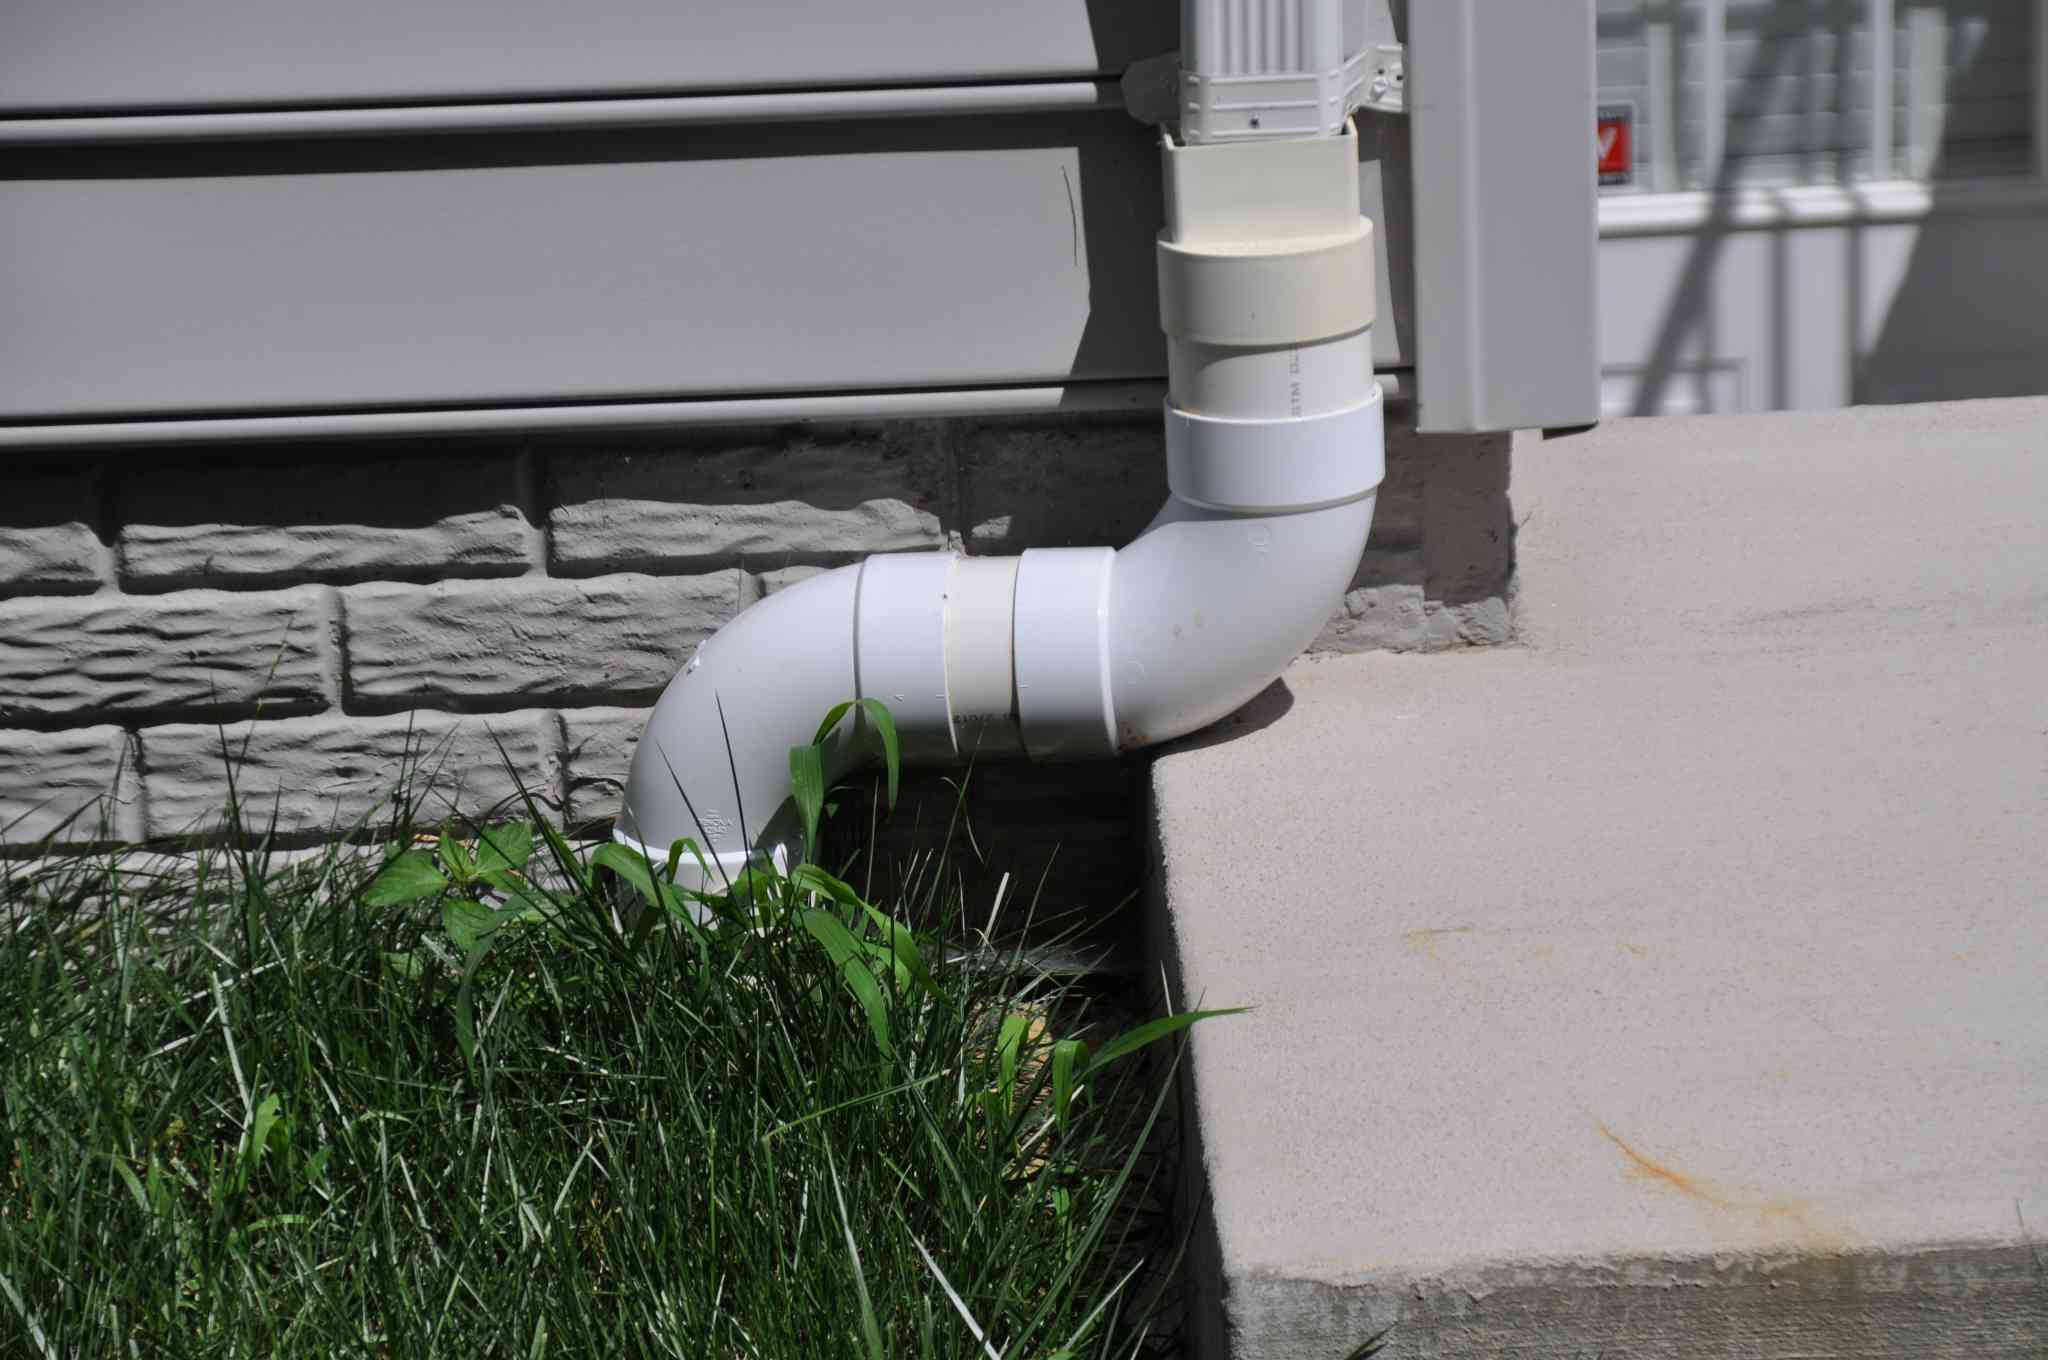 Drainage problems you should fix before winter aqua bright for Drainage problems